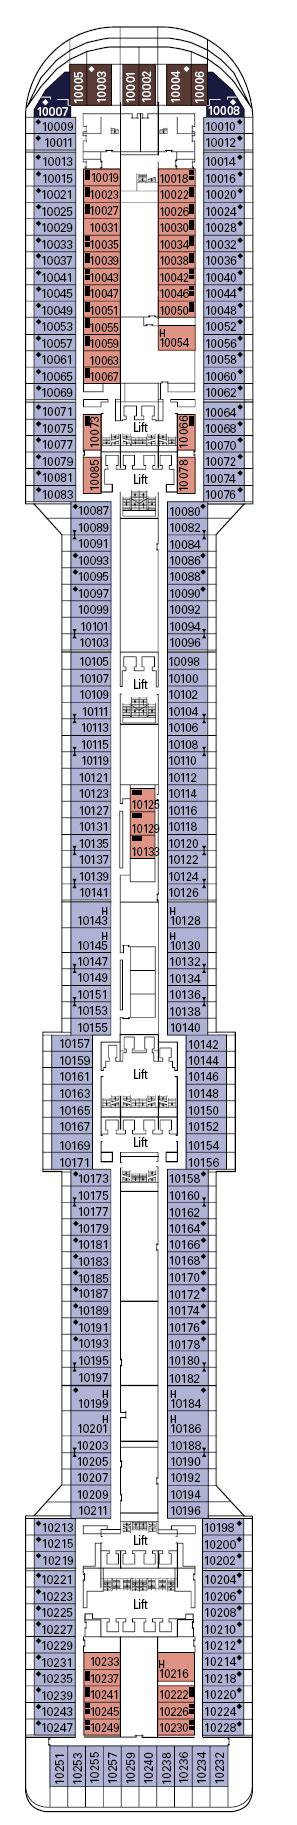 Msc Splendida Deck Plans  Deck 0 Iglucruisecom